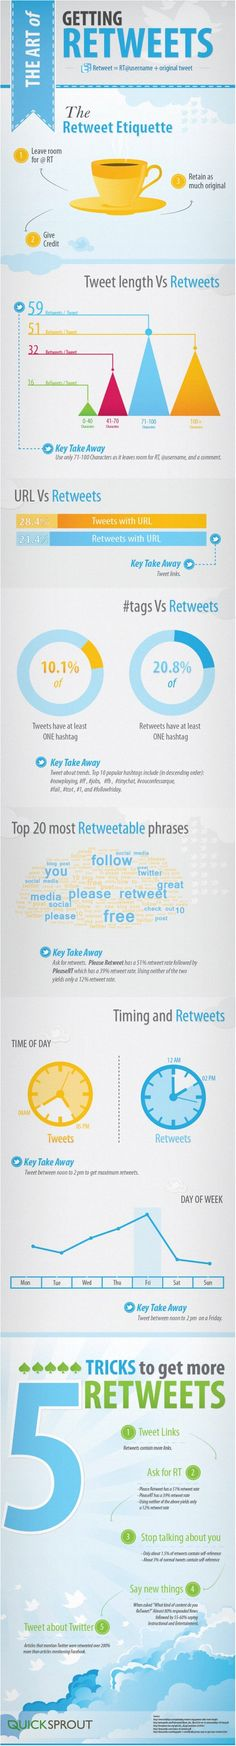 The art of retweeting. The best etiquette for Twitter.